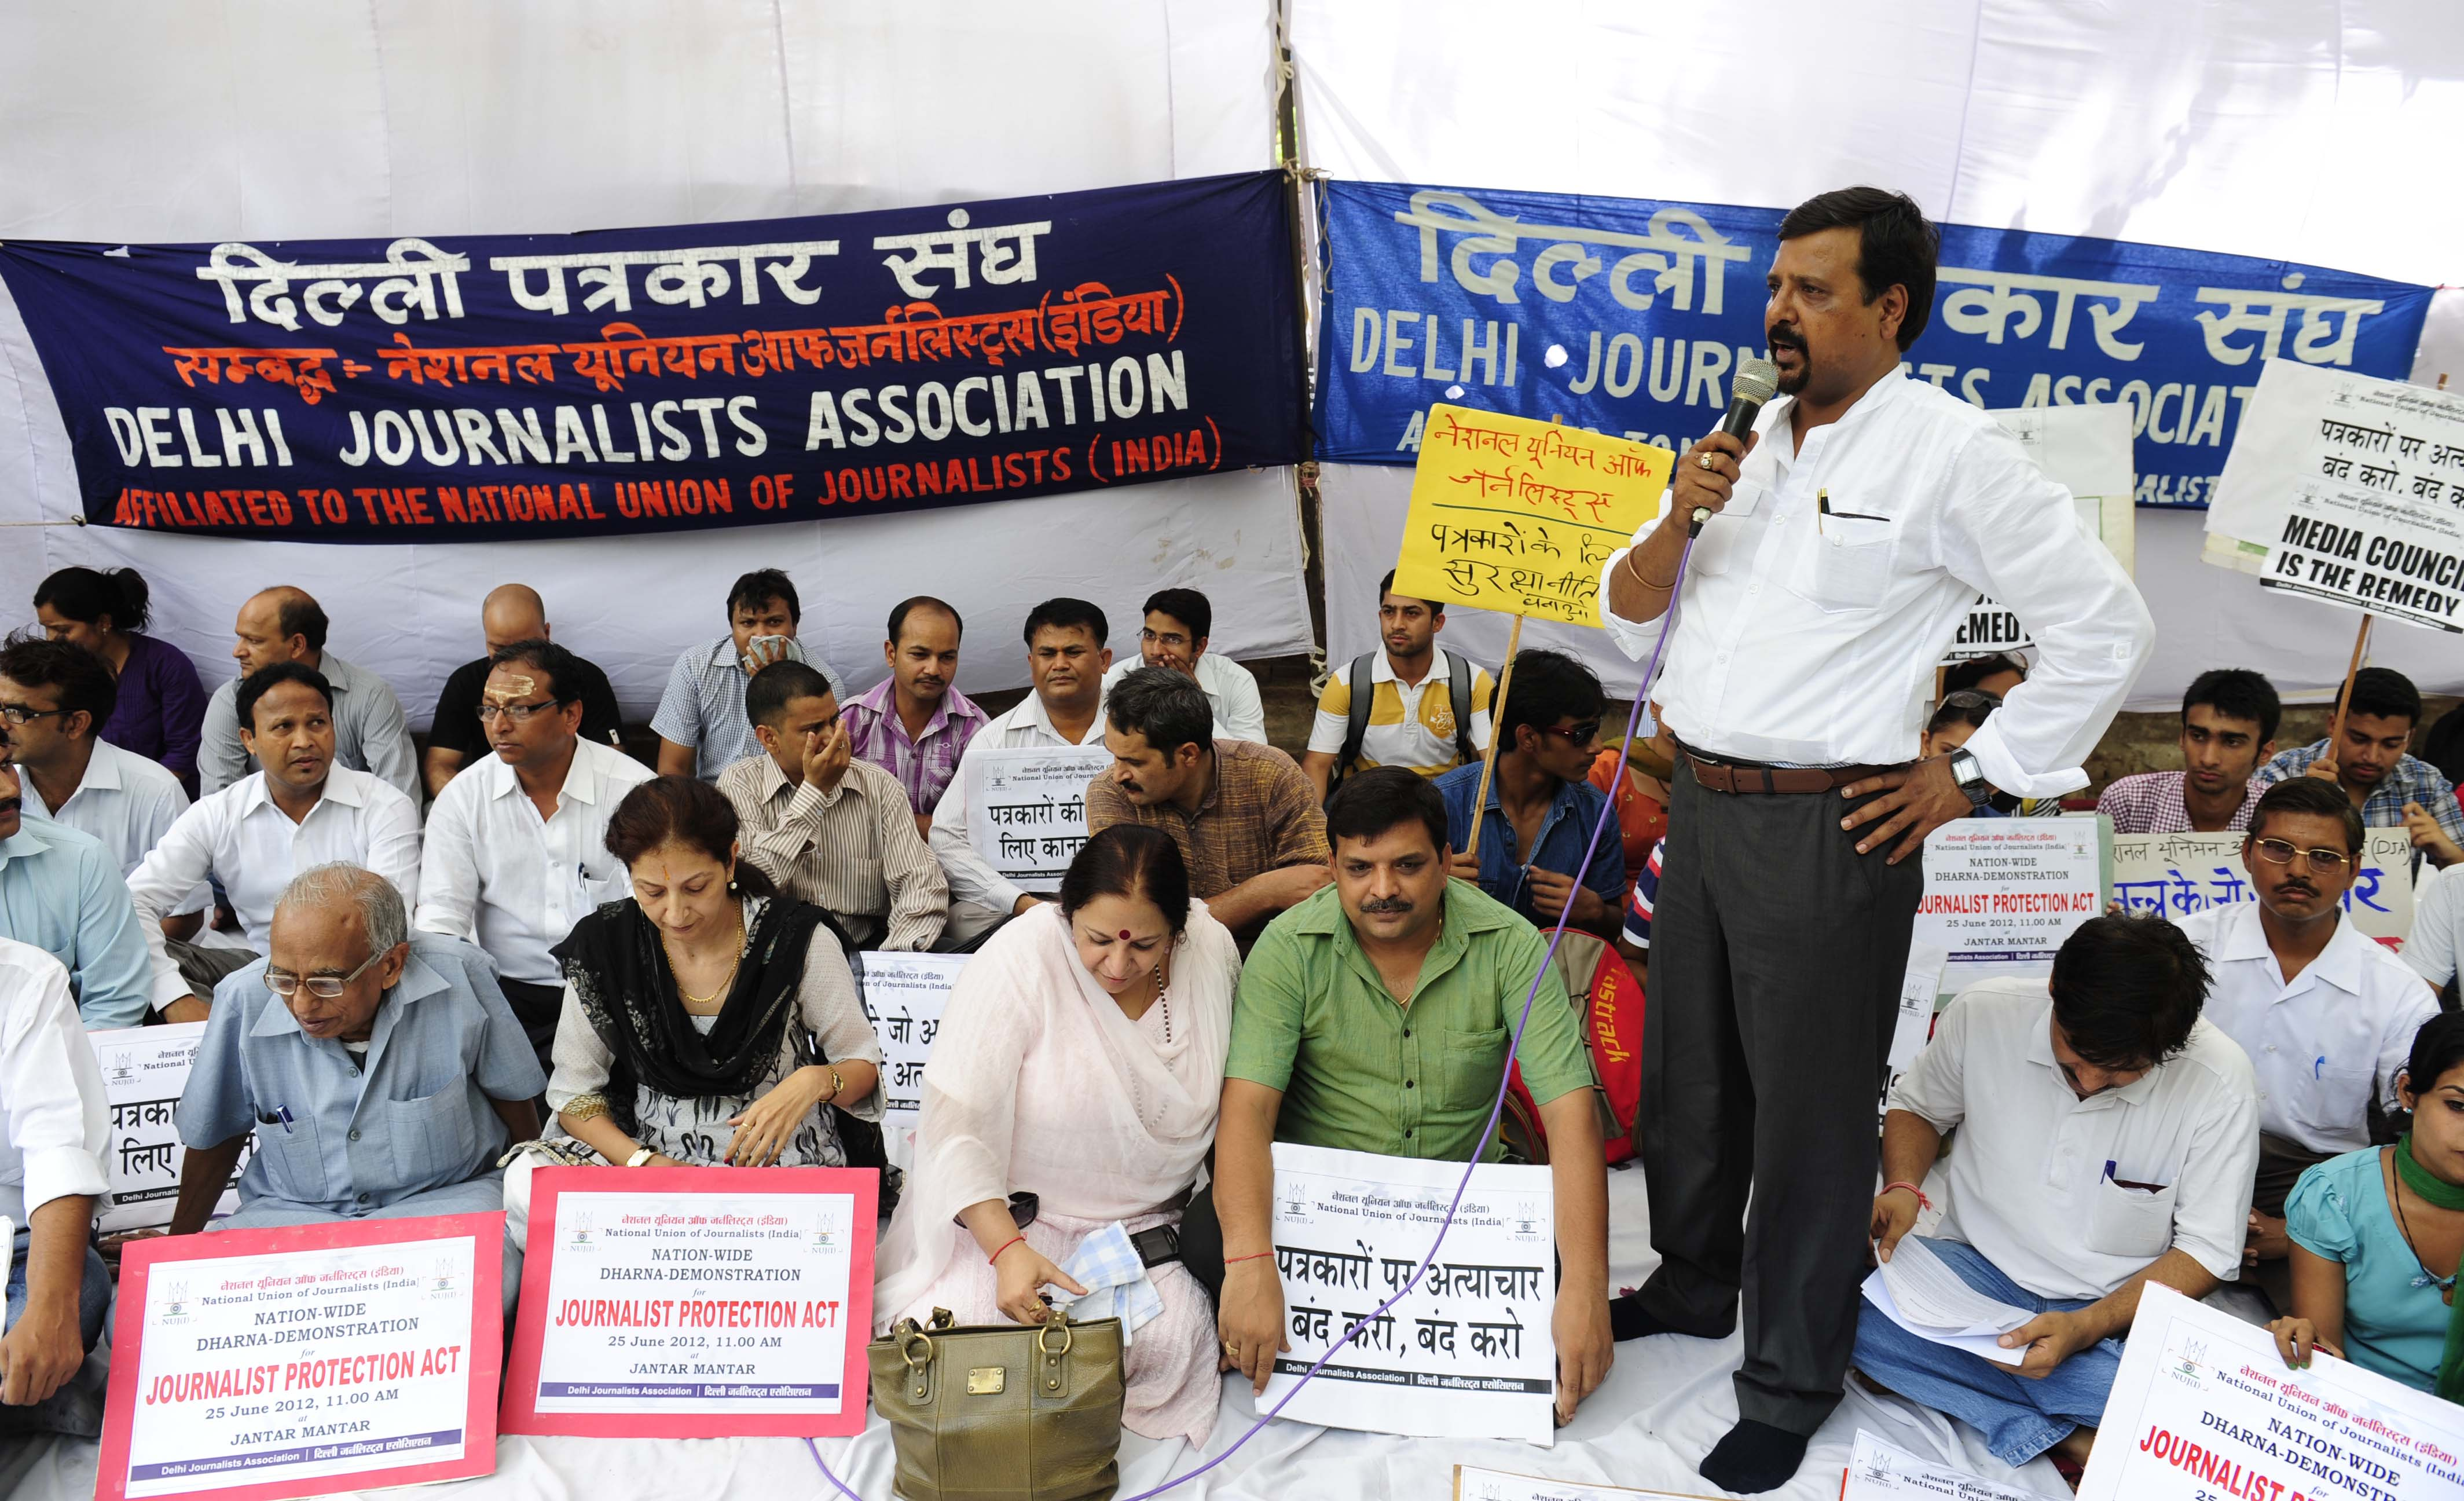 Press Freedom in India – The Indian Medialogue